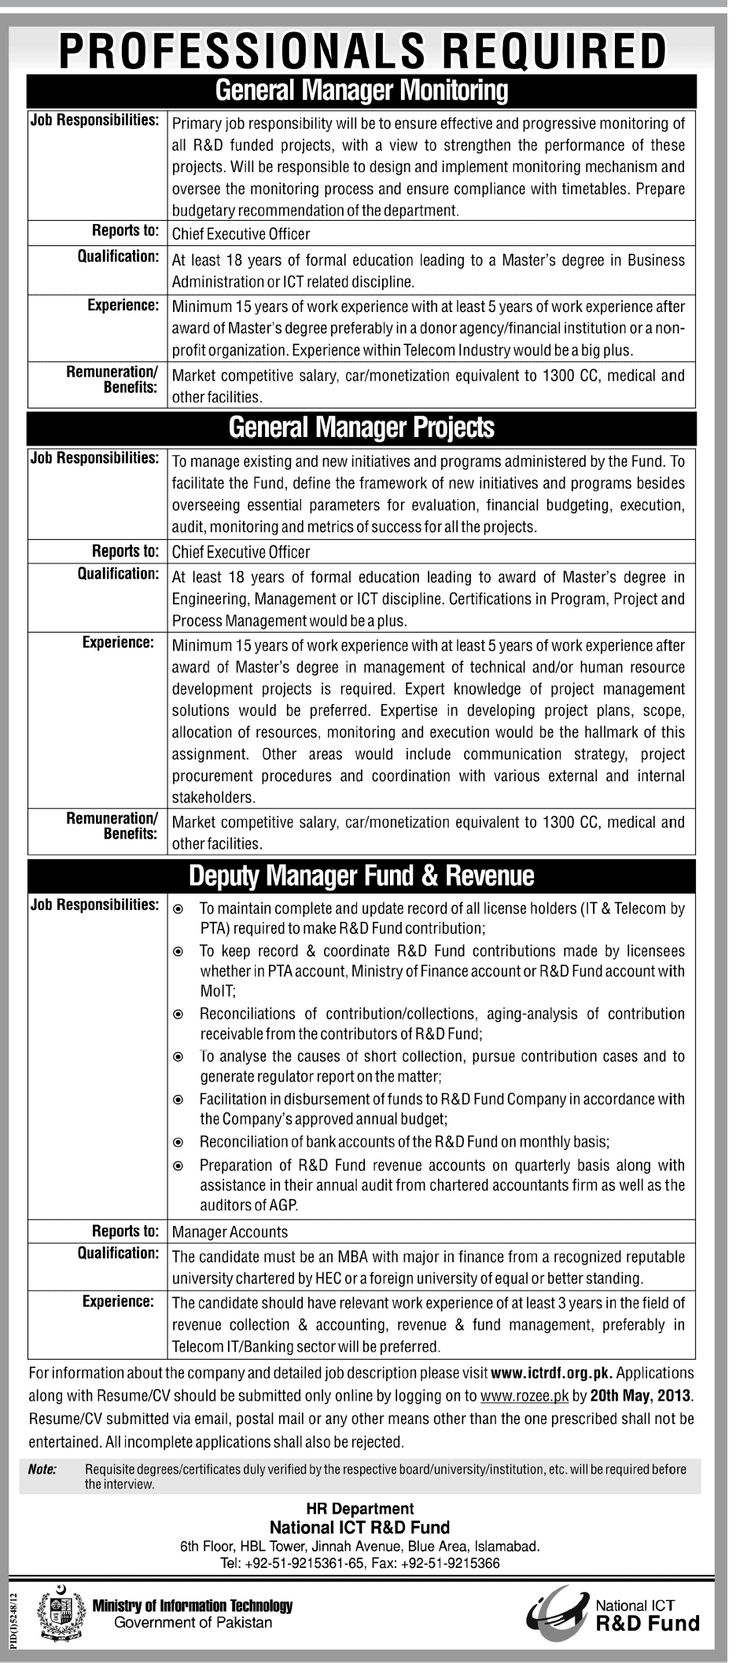 best images about information technology jobs in islamabad1 jobs in ministry of information technology